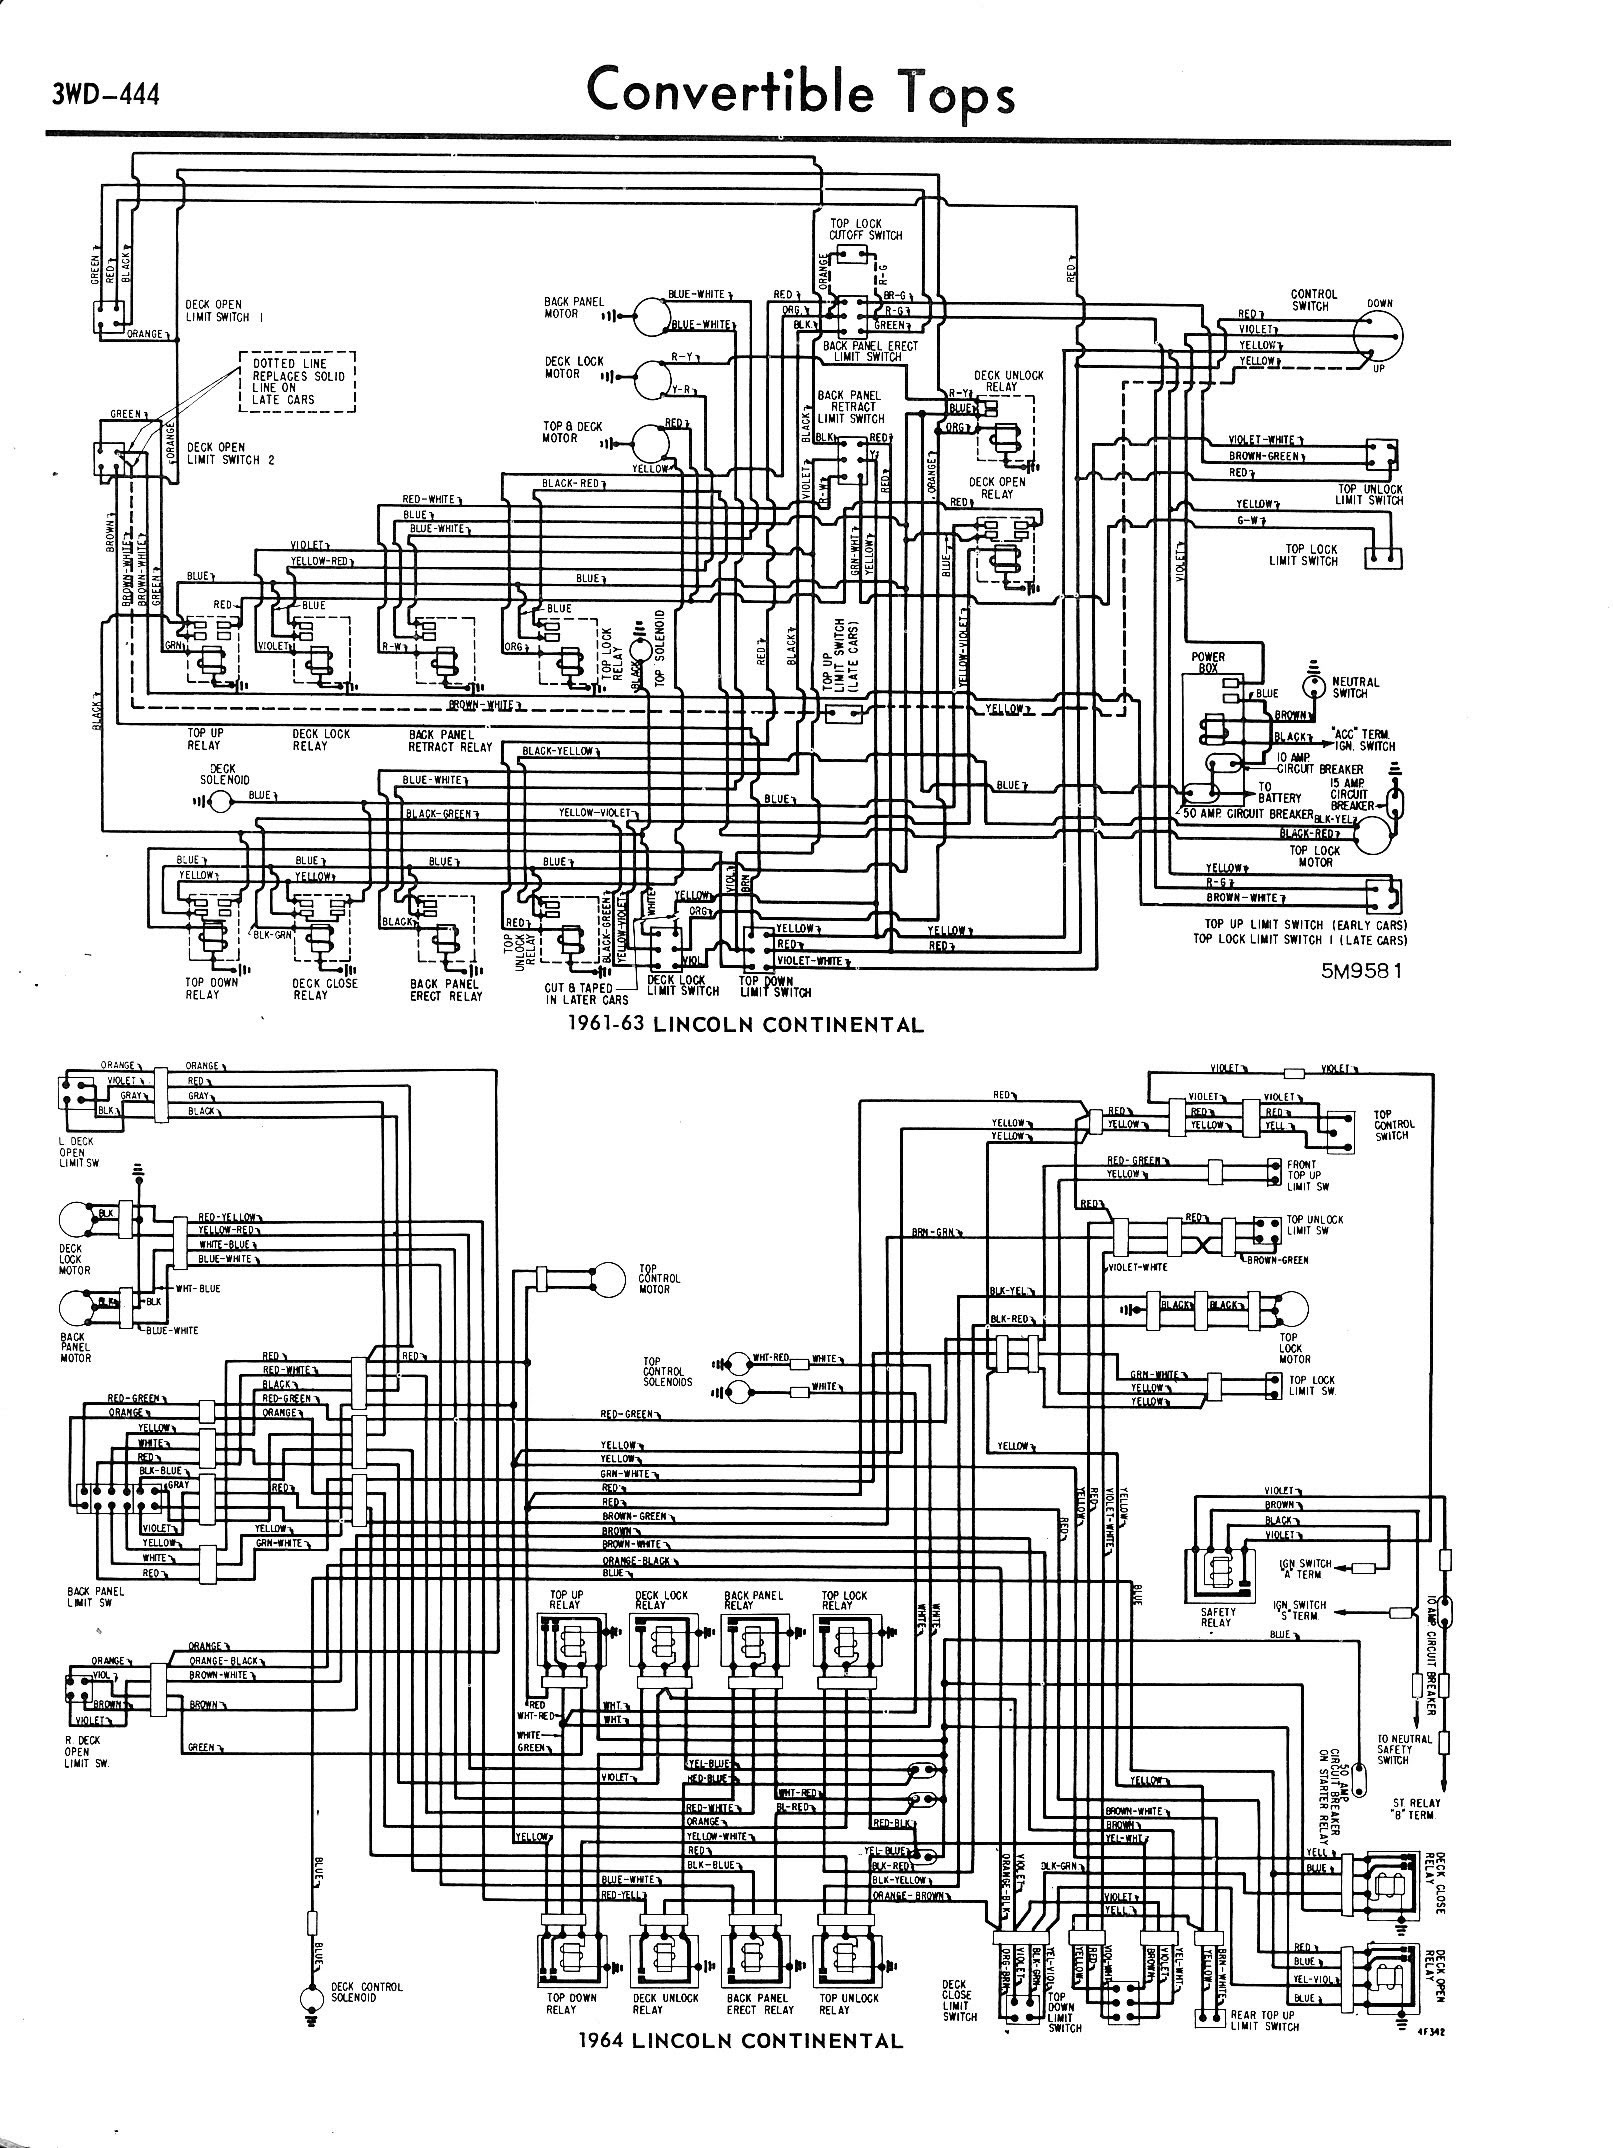 1965 lincoln continental wiring diagram - wiring diagrams button touch-hell  - touch-hell.lamorciola.it  touch-hell.lamorciola.it